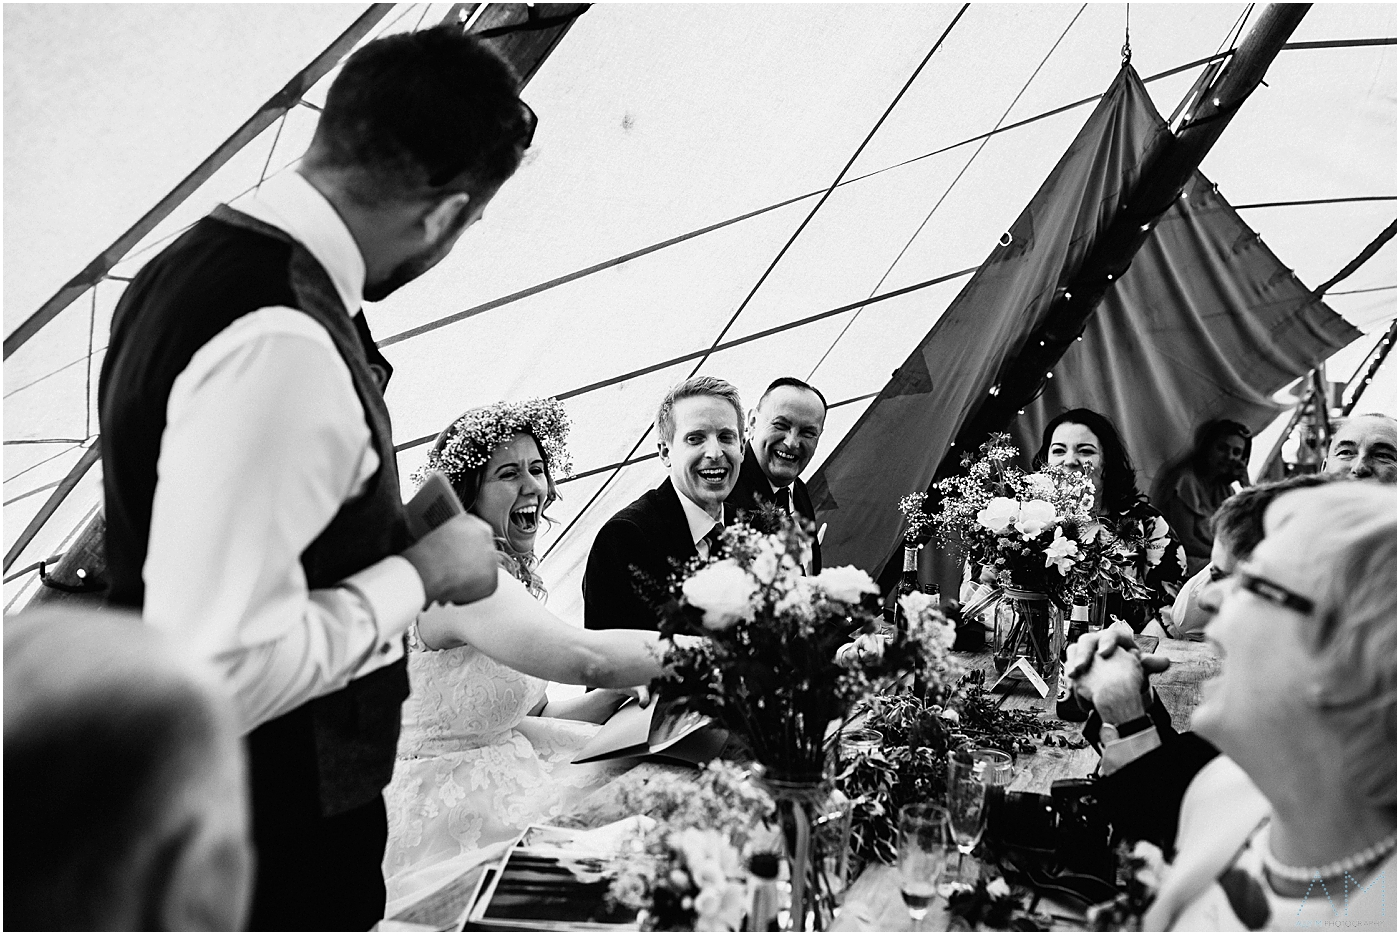 Laughing wedding party during best man speech